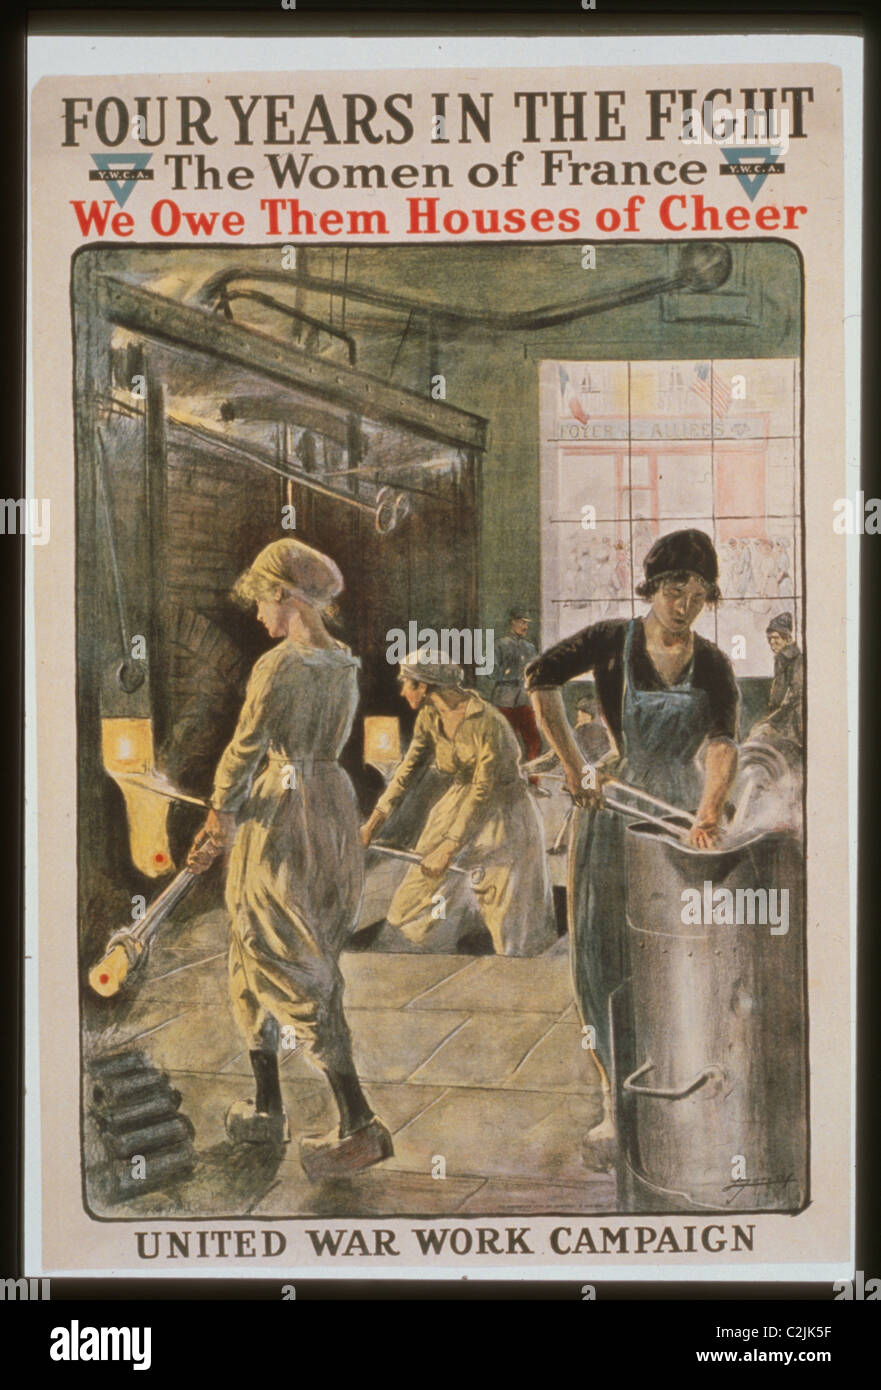 Four years in the fight. The women of France, we owe them houses of cheer. United War Work Campaign. Y.M.C.A. - Stock Image